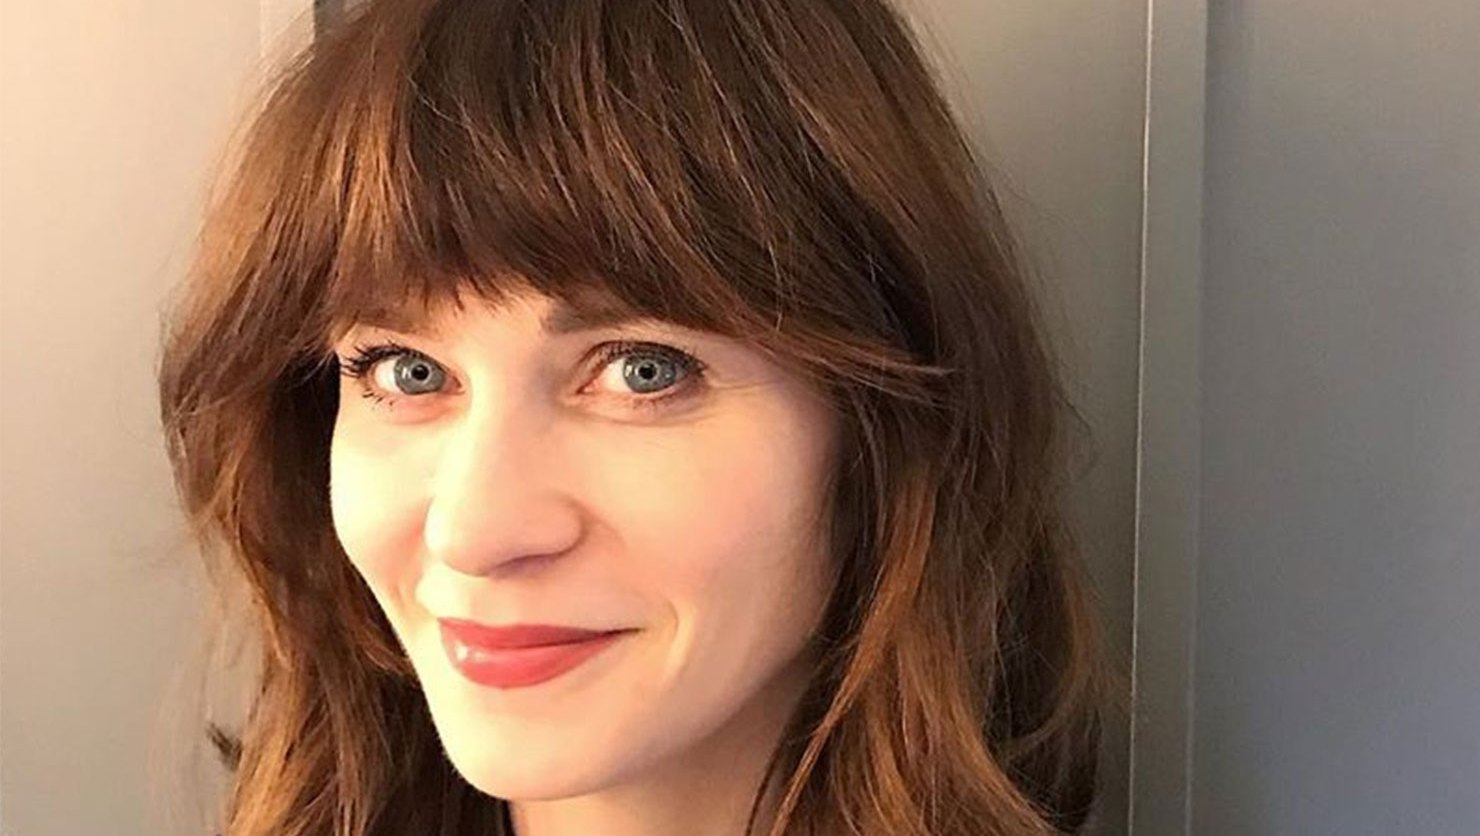 Zooey Deschanel's New Haircut Is One of the Best of 2019 So Far